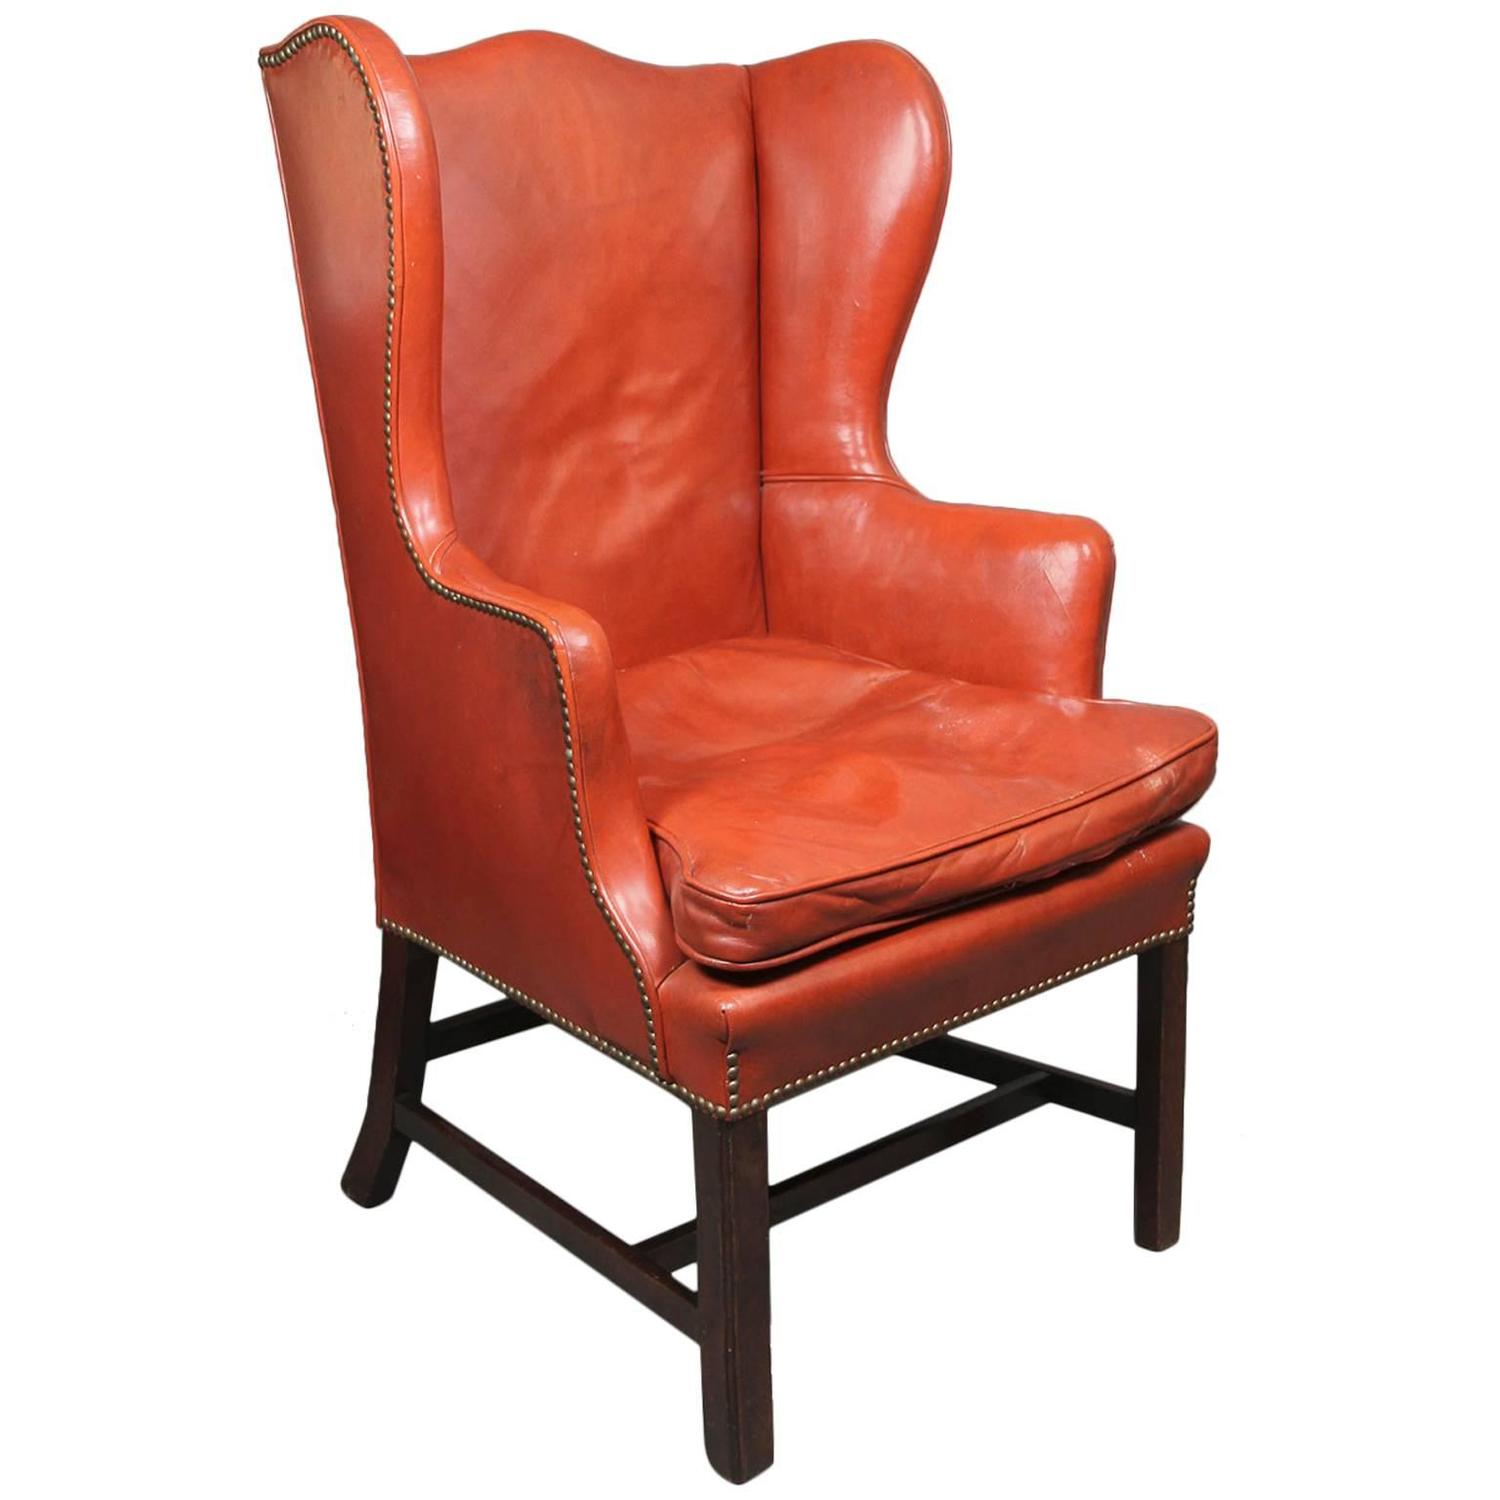 George III Mahogany Wing Chair For Sale at 1stdibs